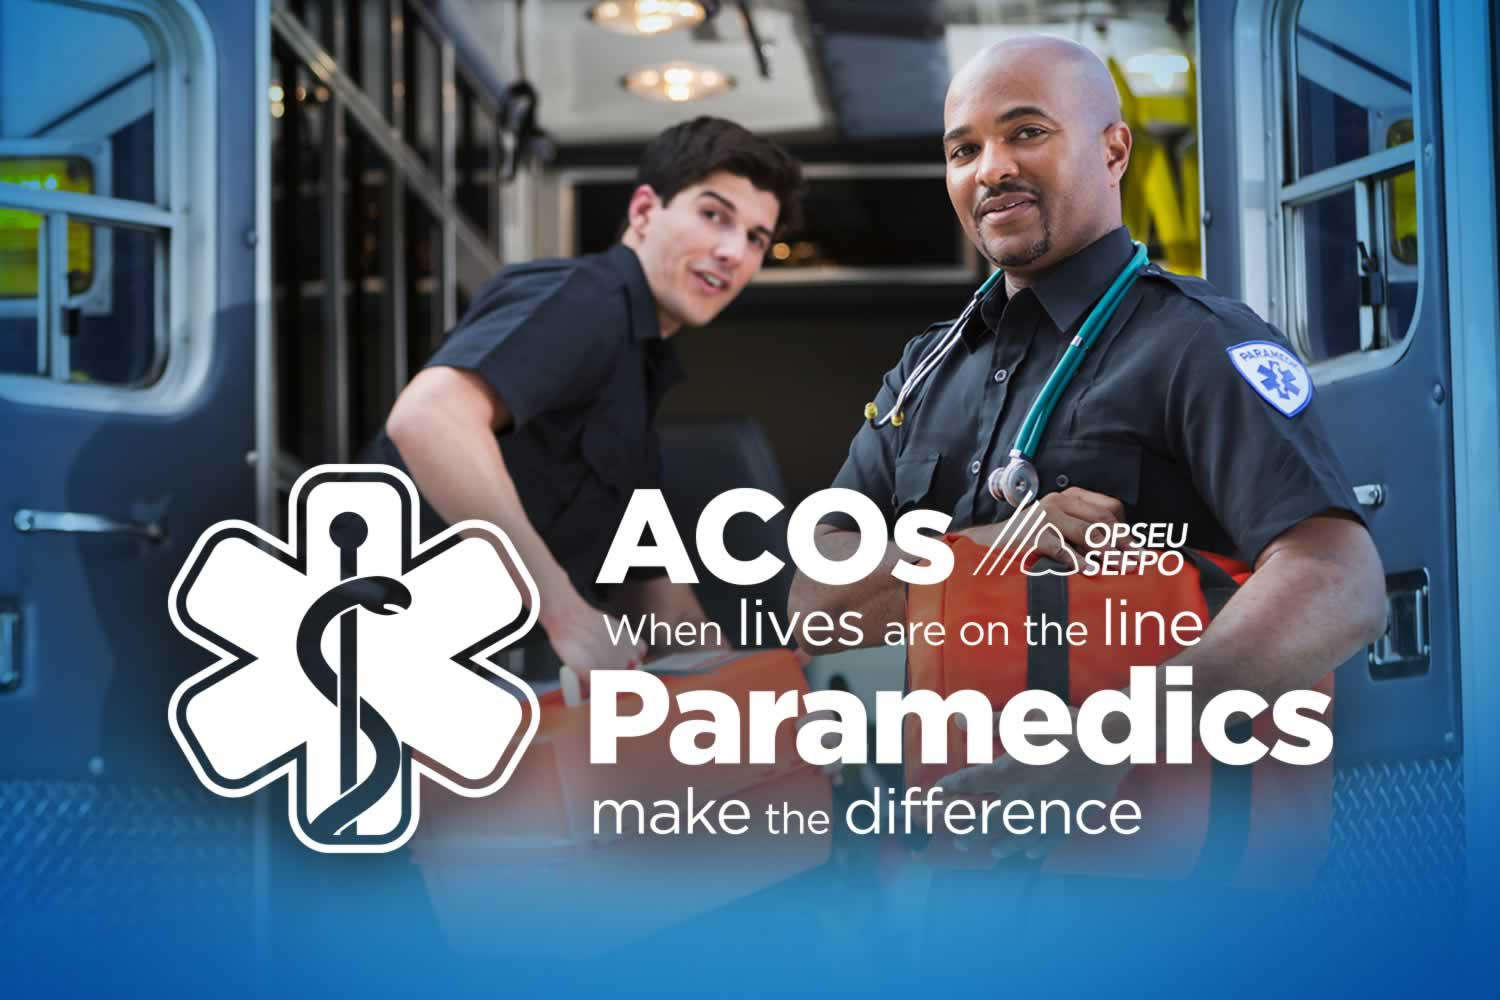 OPSEU ACOS - When lives are on the line Paramedics make the difference